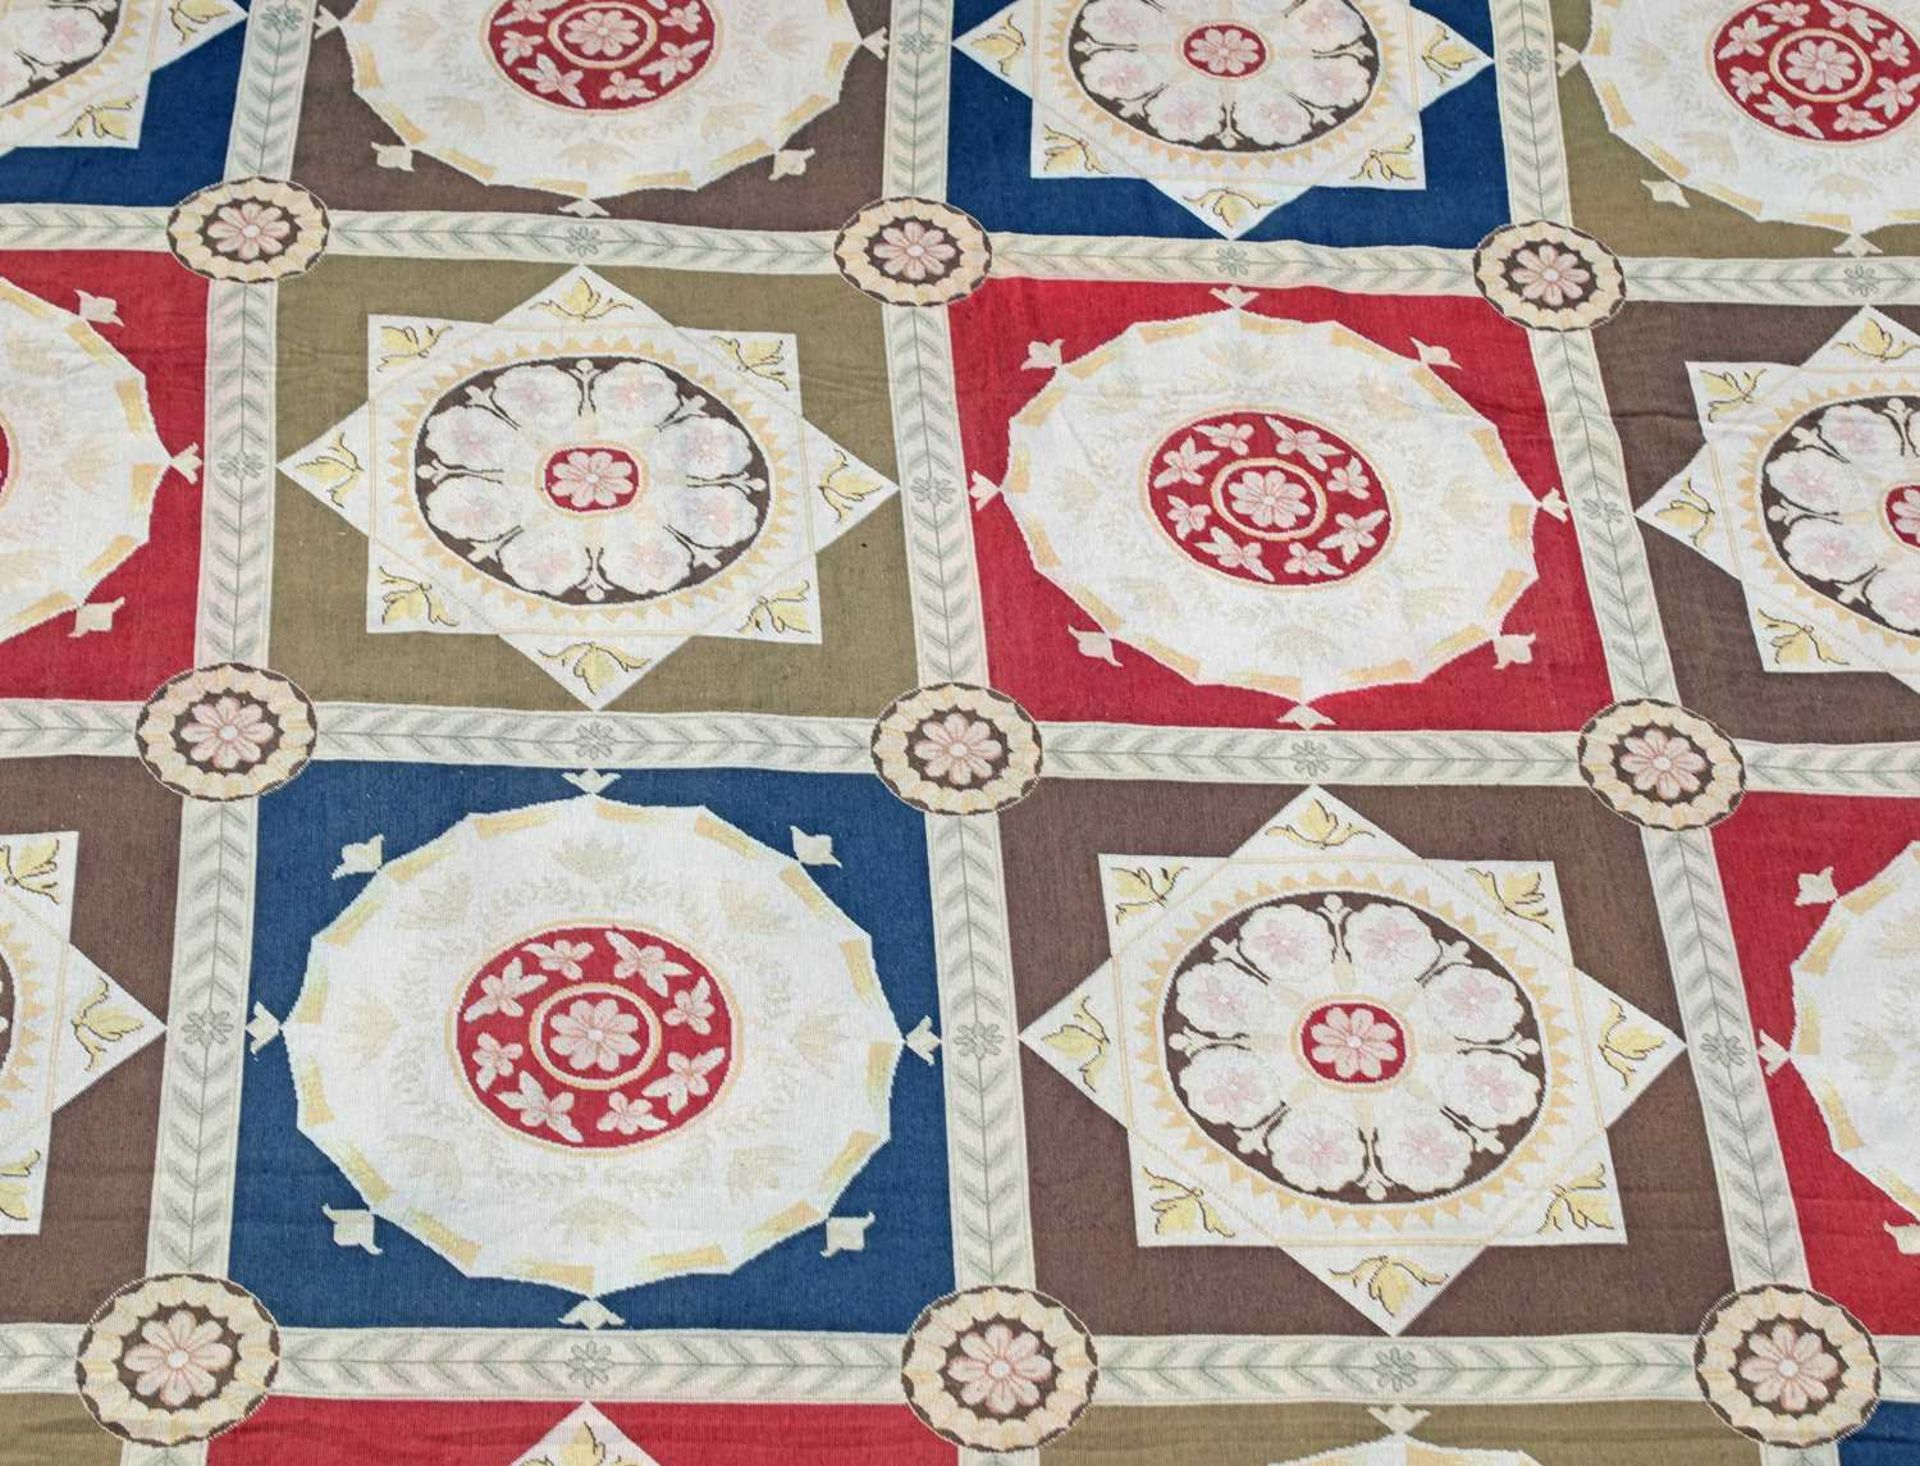 A handwoven needlepoint rug of 17th century Savonnerie design, - Image 2 of 3